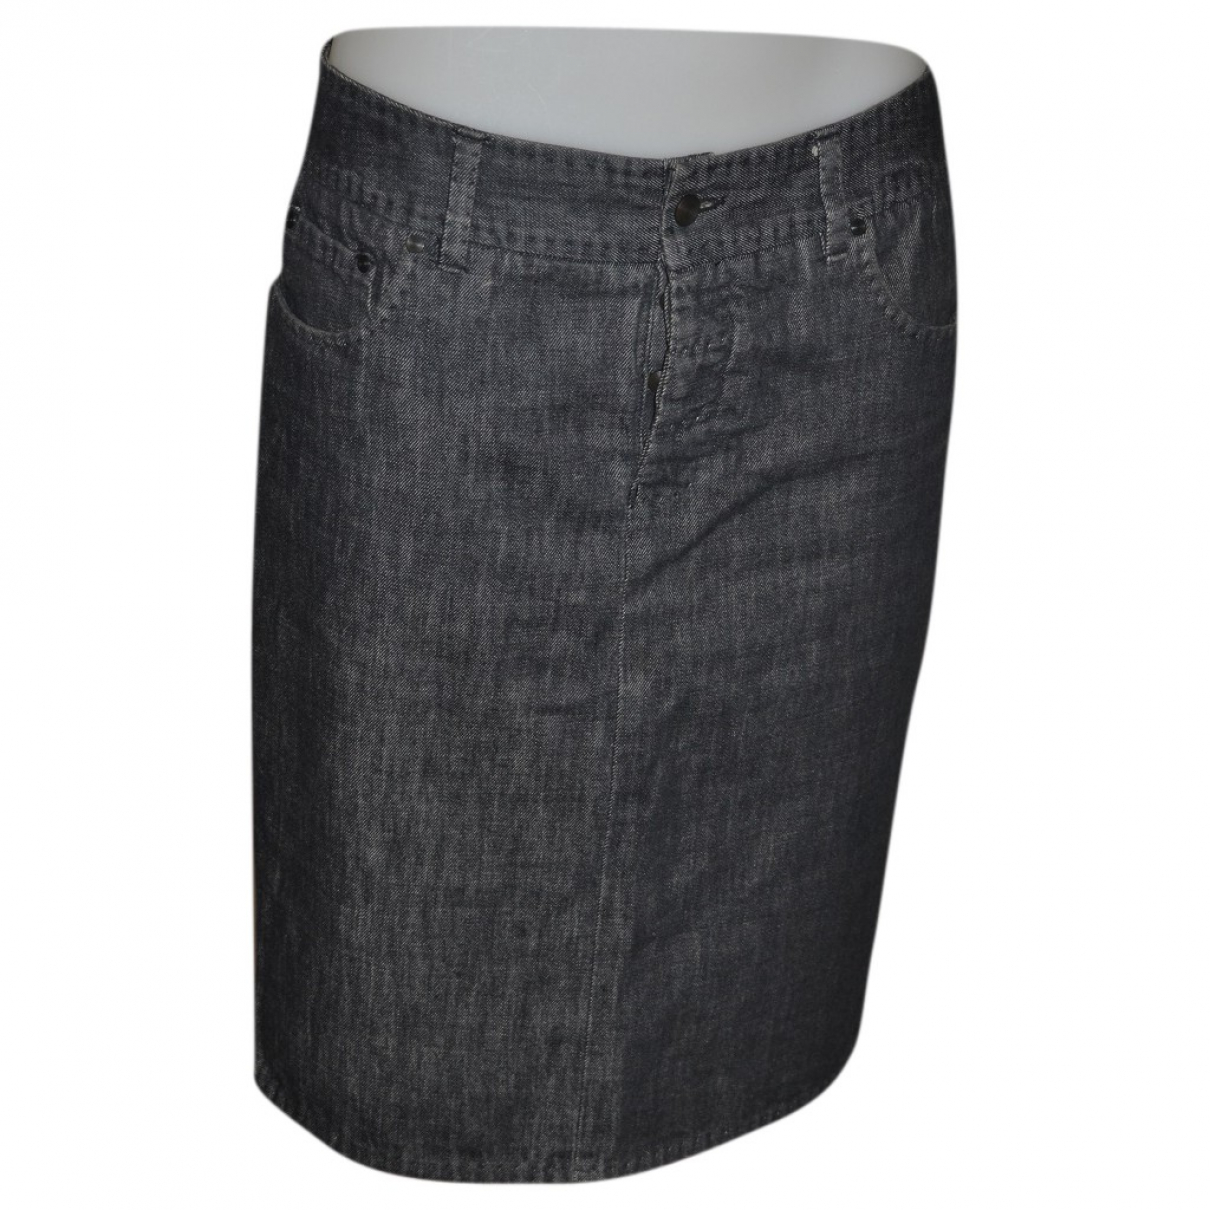 Gucci \N Anthracite Denim - Jeans skirt for Women 42 IT